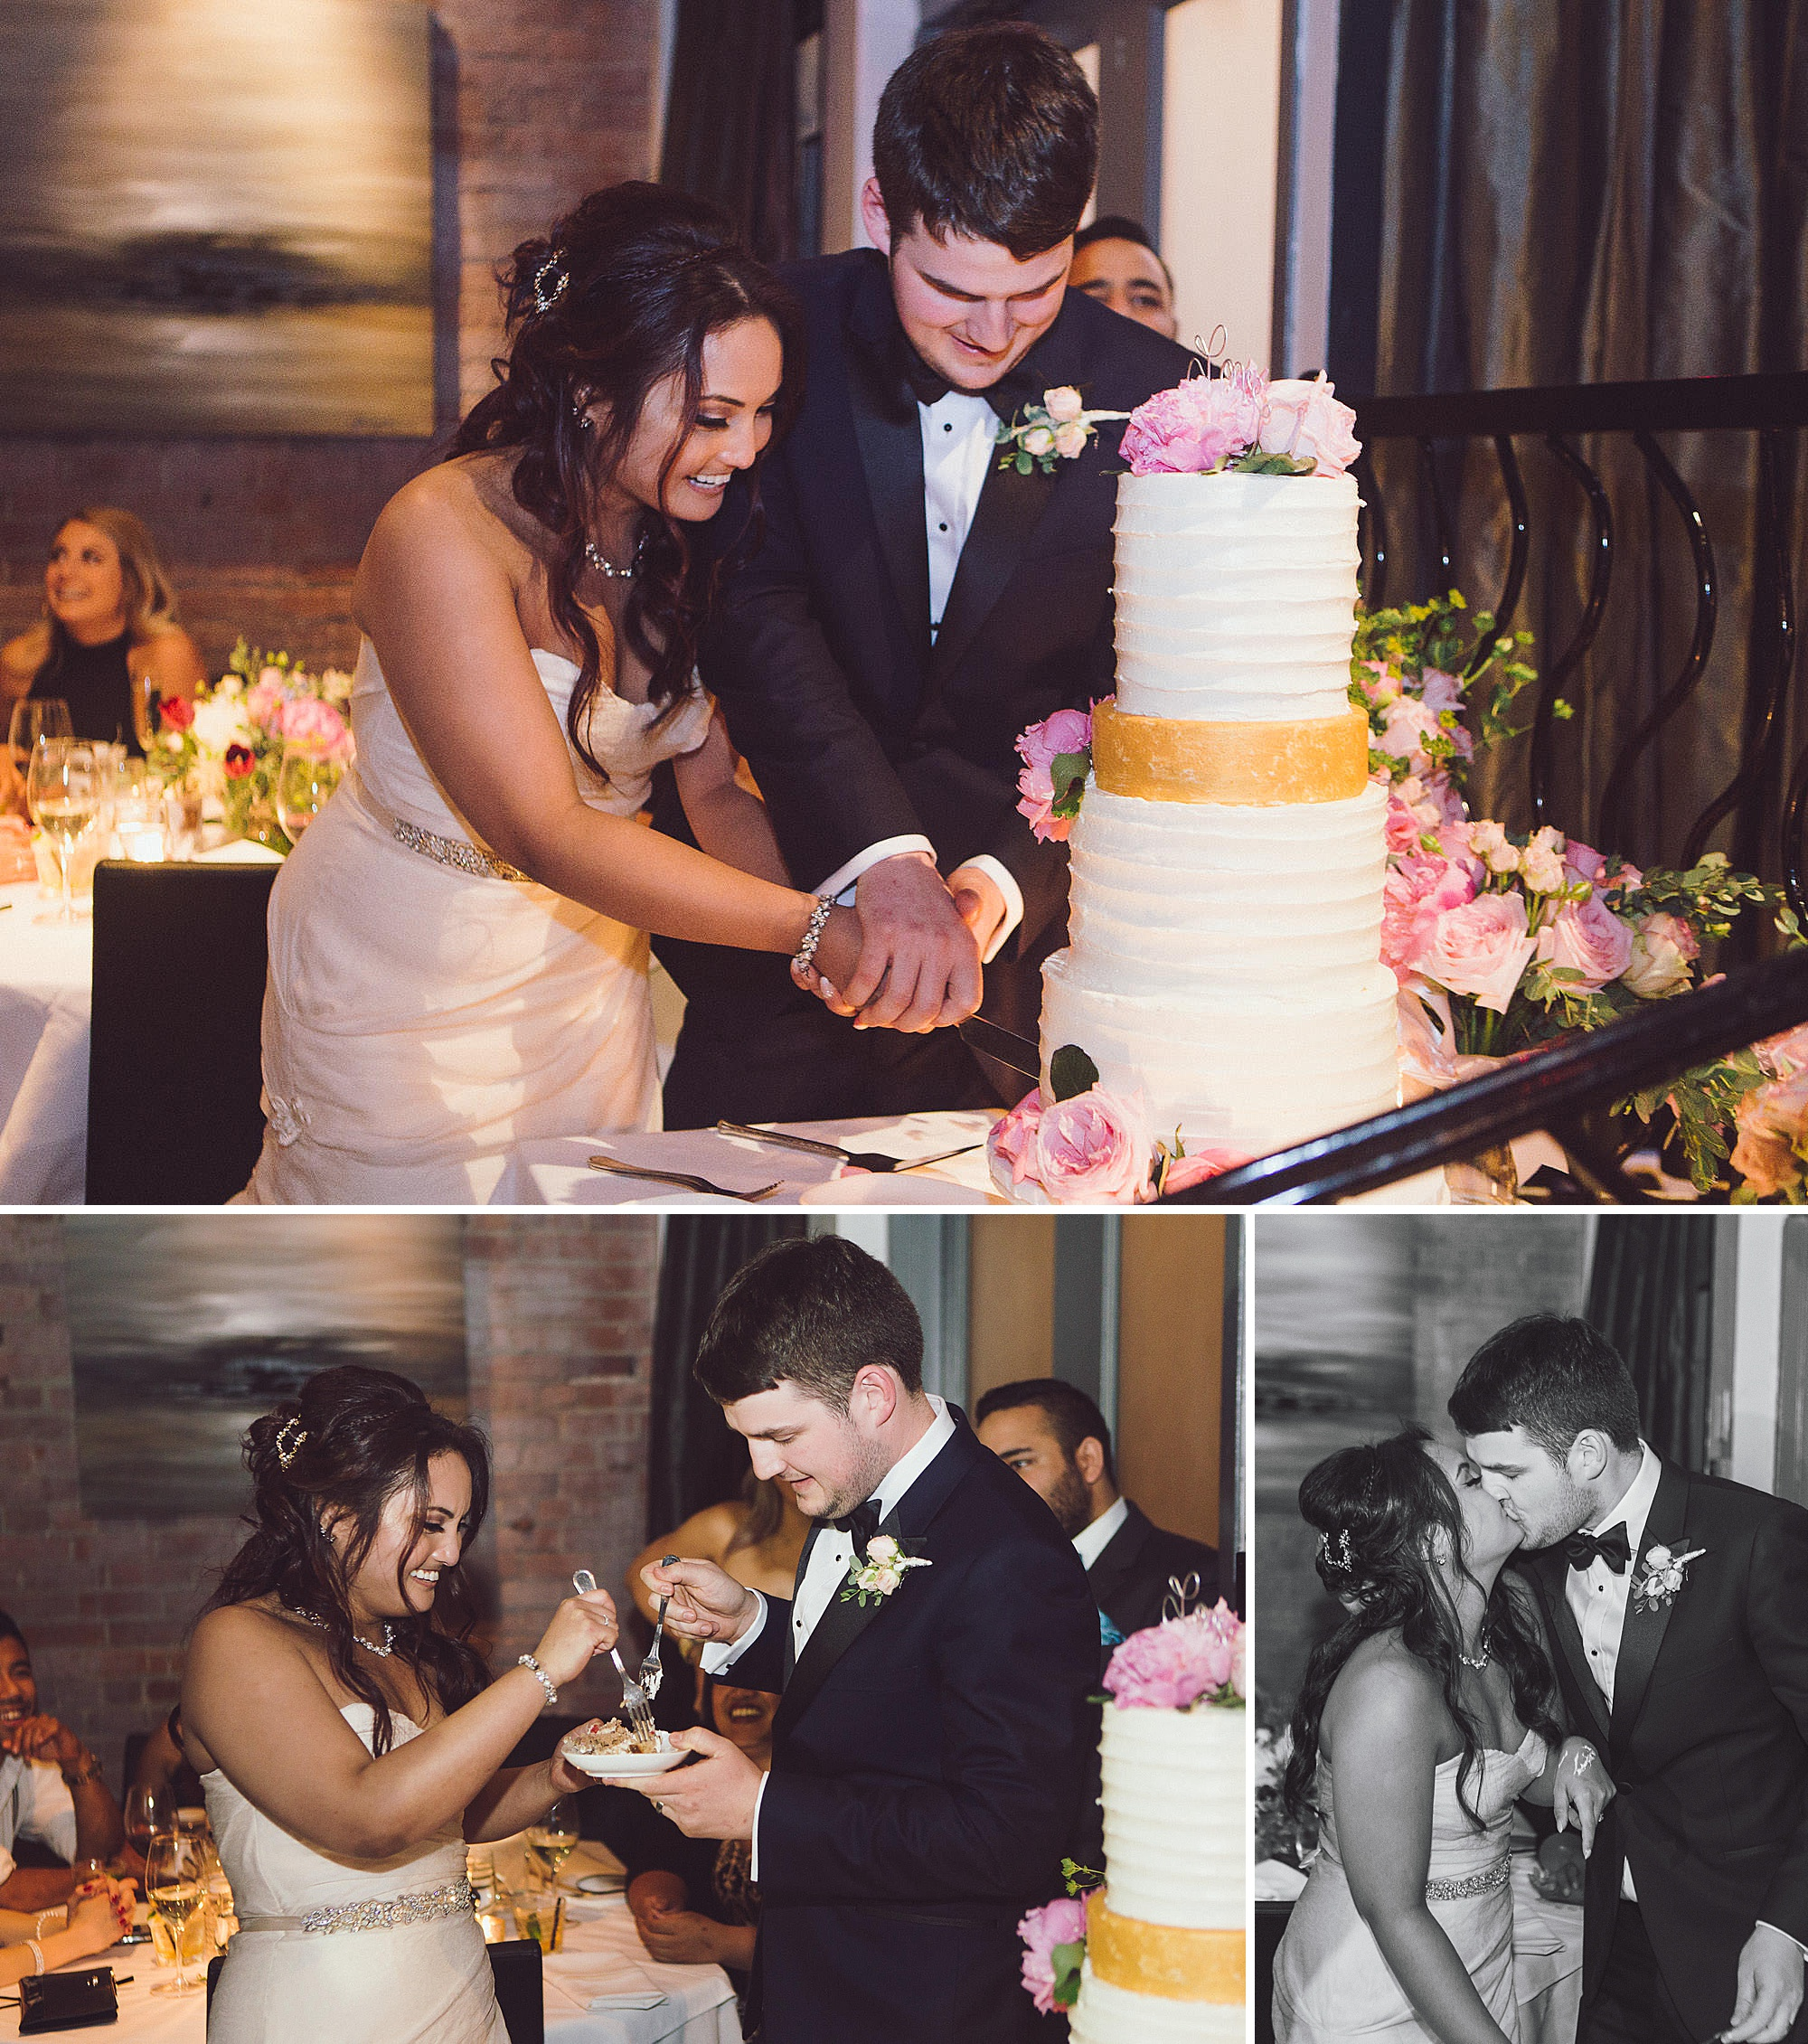 Cecille and Cody cut their cake